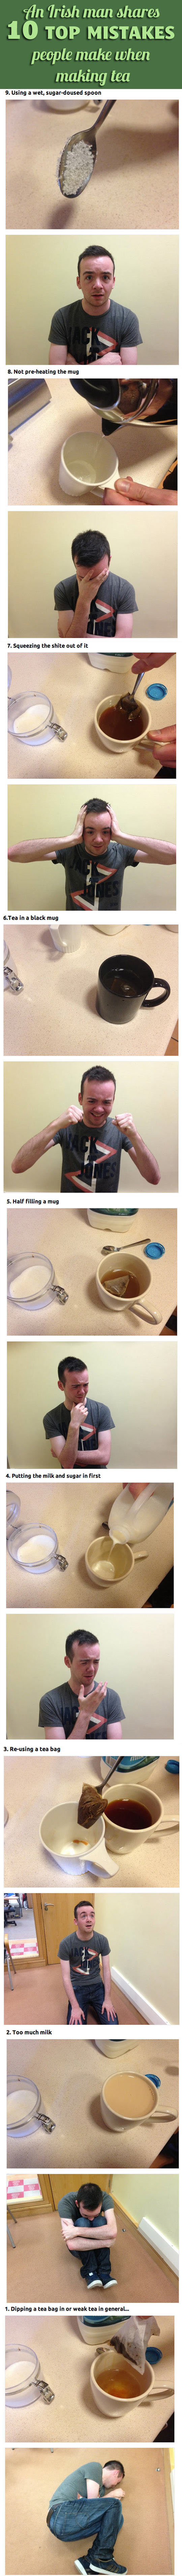 Mistakes People Make When Making Tea